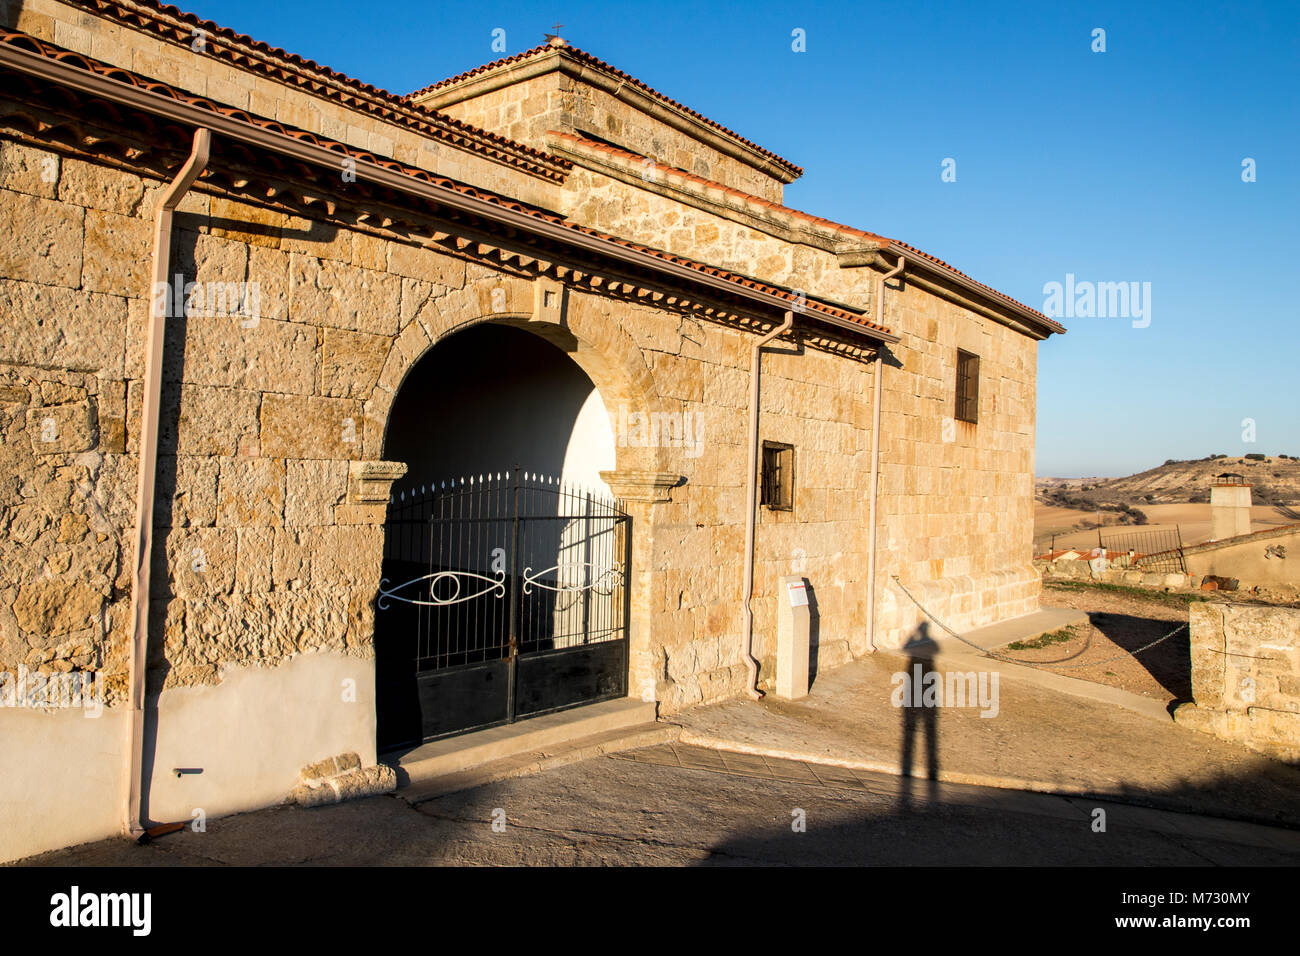 The Church of Our Lady of the Assumption (Iglesia de la Asuncion) in Peleas de Arriba, a small town in the Province - Stock Image